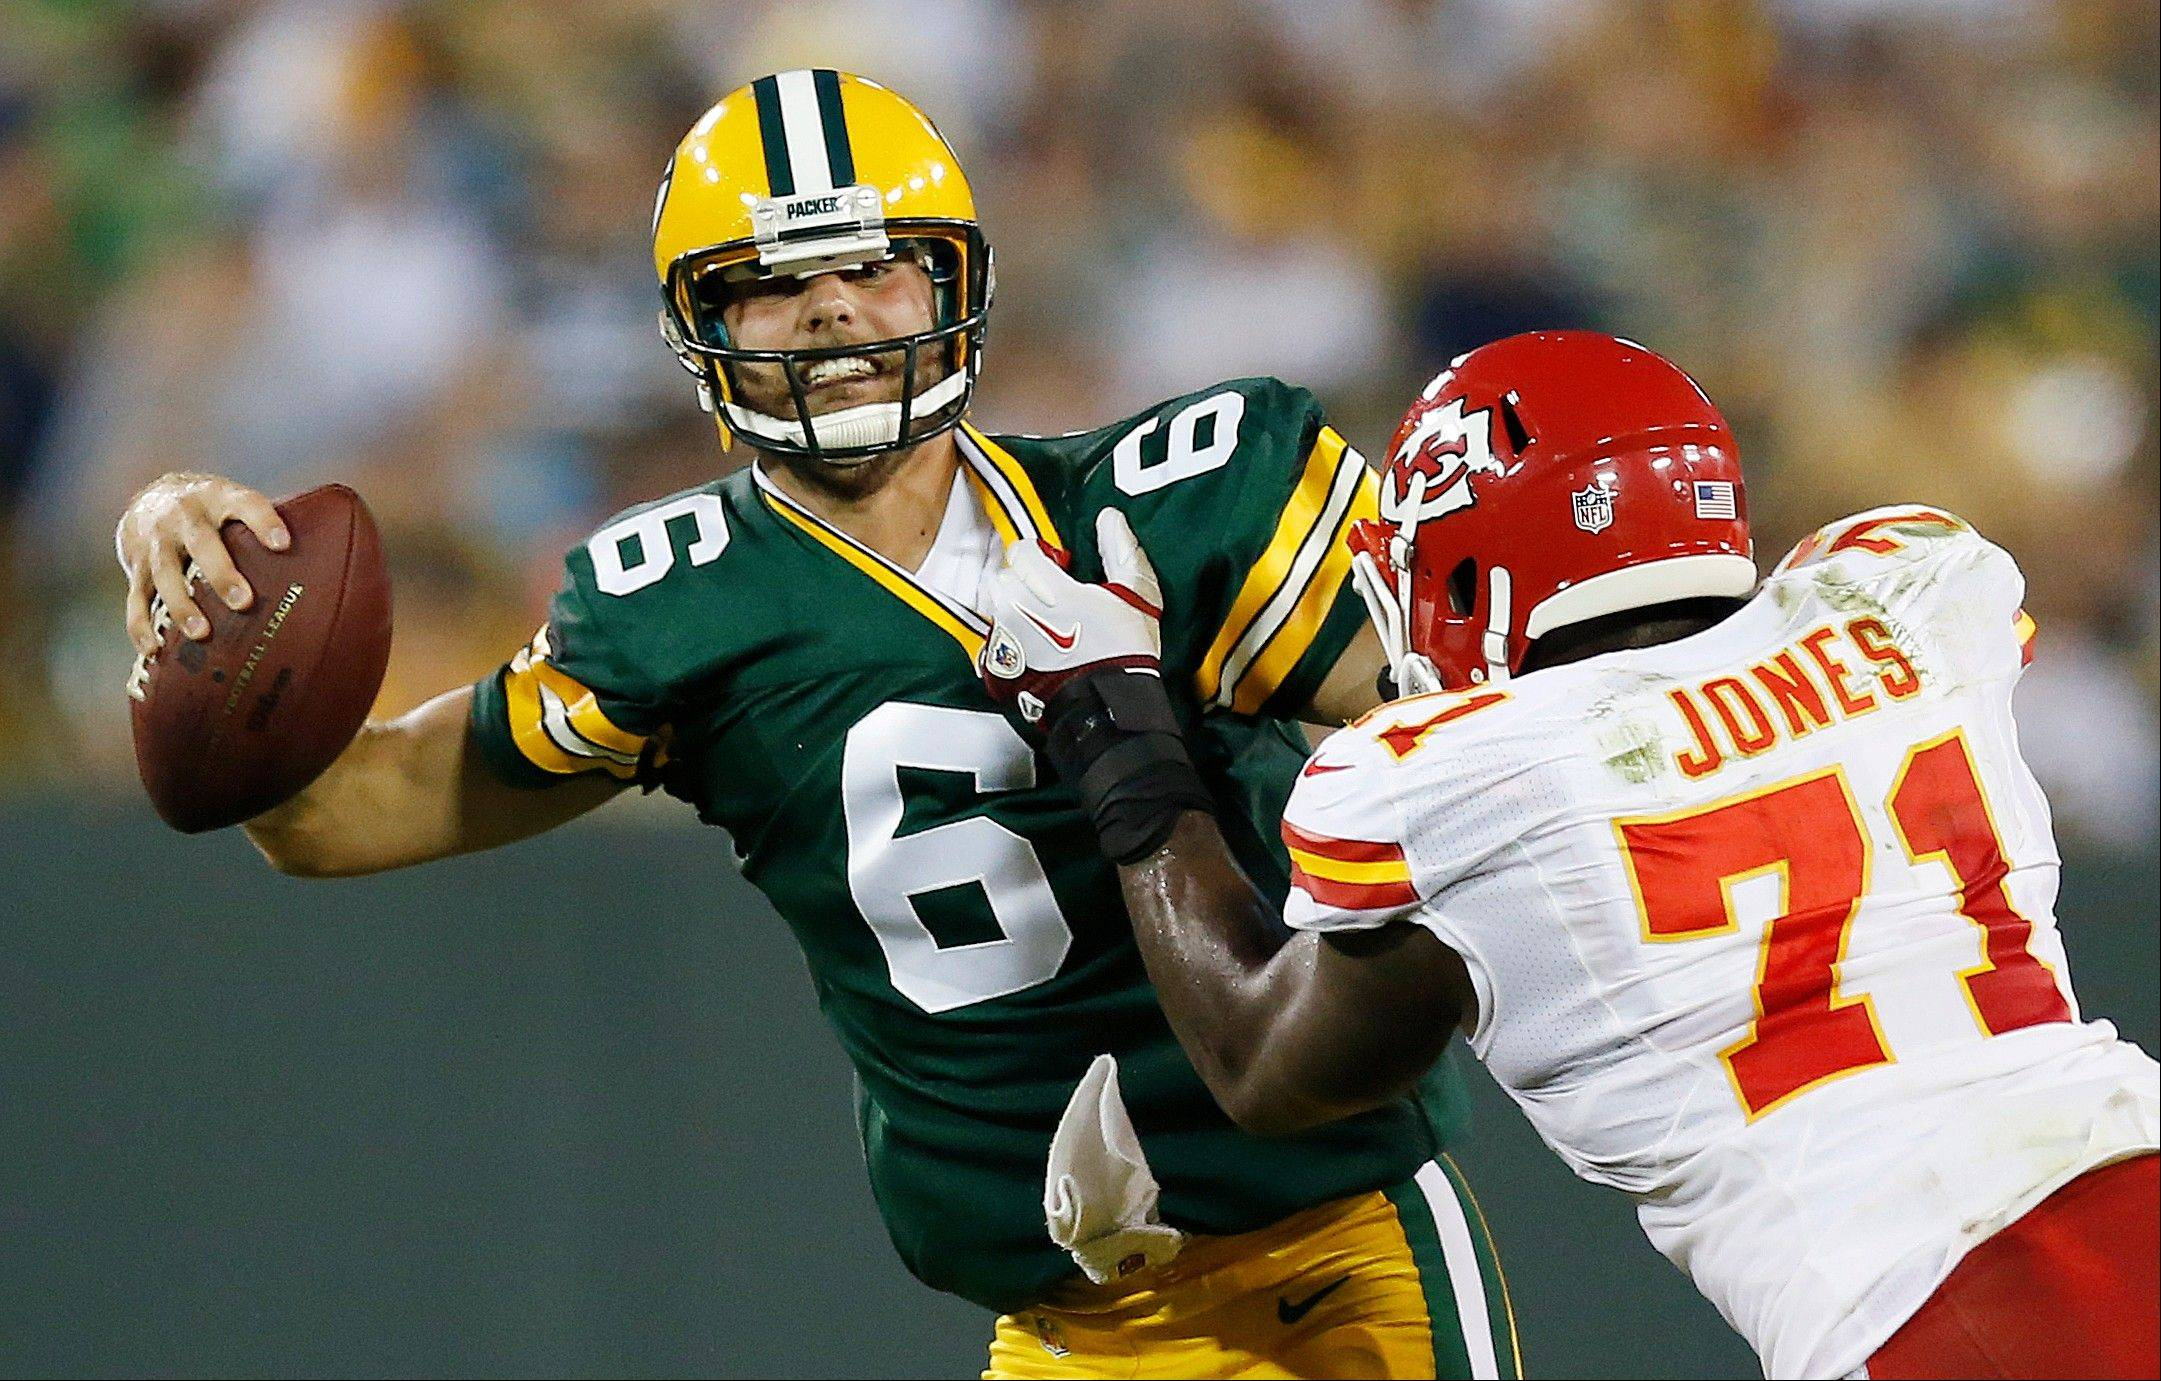 Kansas City's Jeff Allen pressures Green Bay Packers quarterback Graham Harrell during the second half of a preseason game Thursday in Green Bay, Wis.